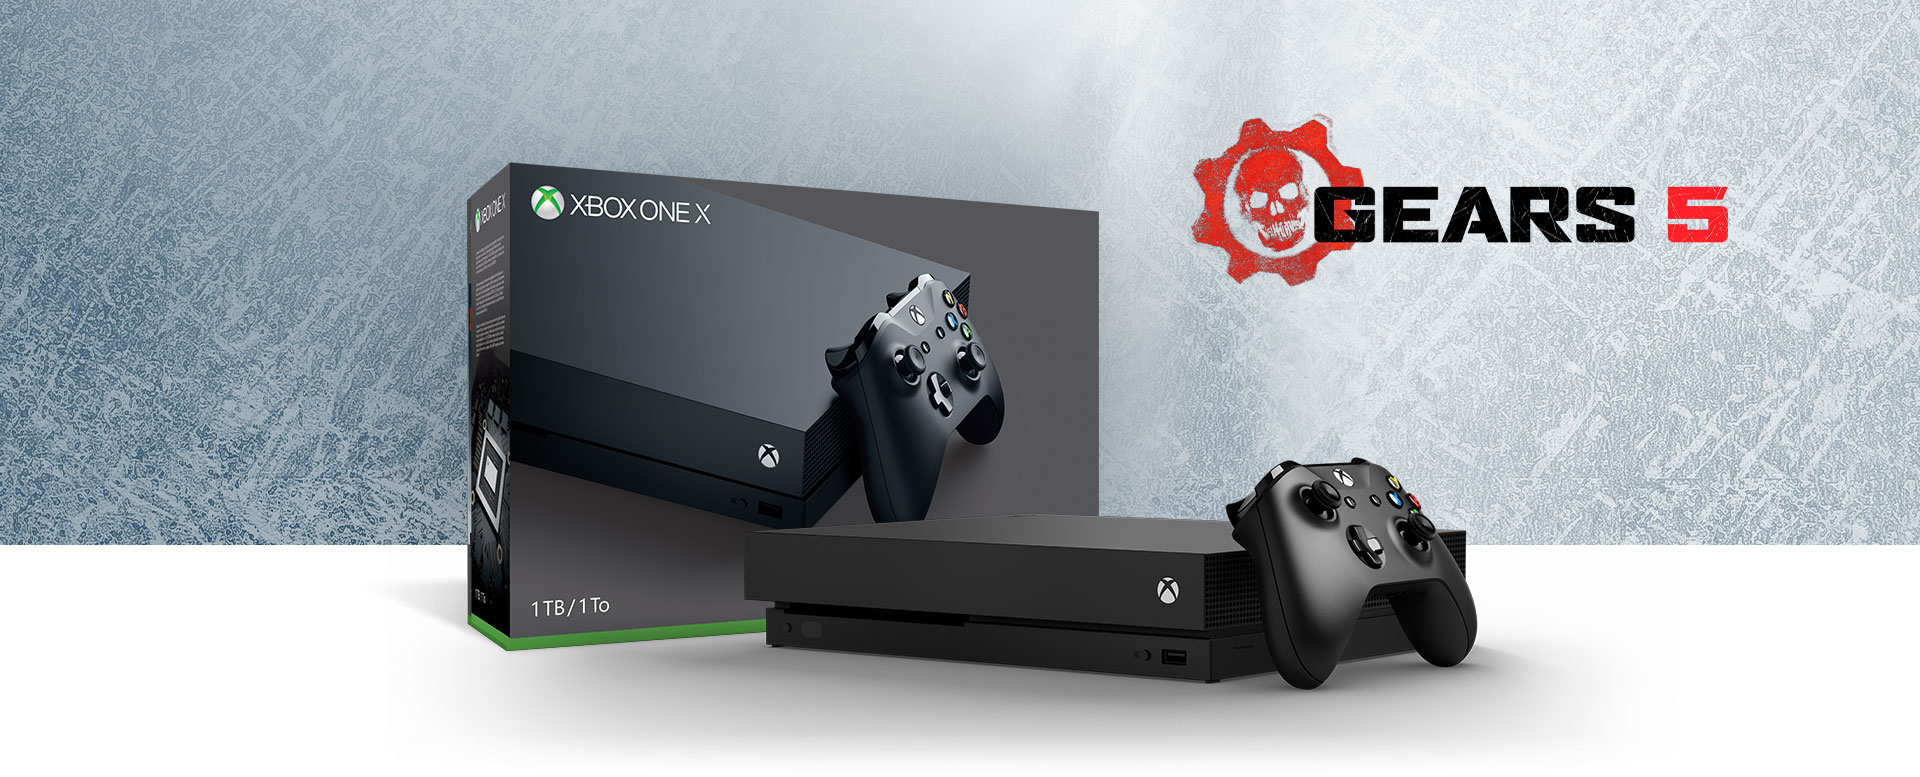 Xbox One X console in front of a hardware bundle box featuring Gears 5 art